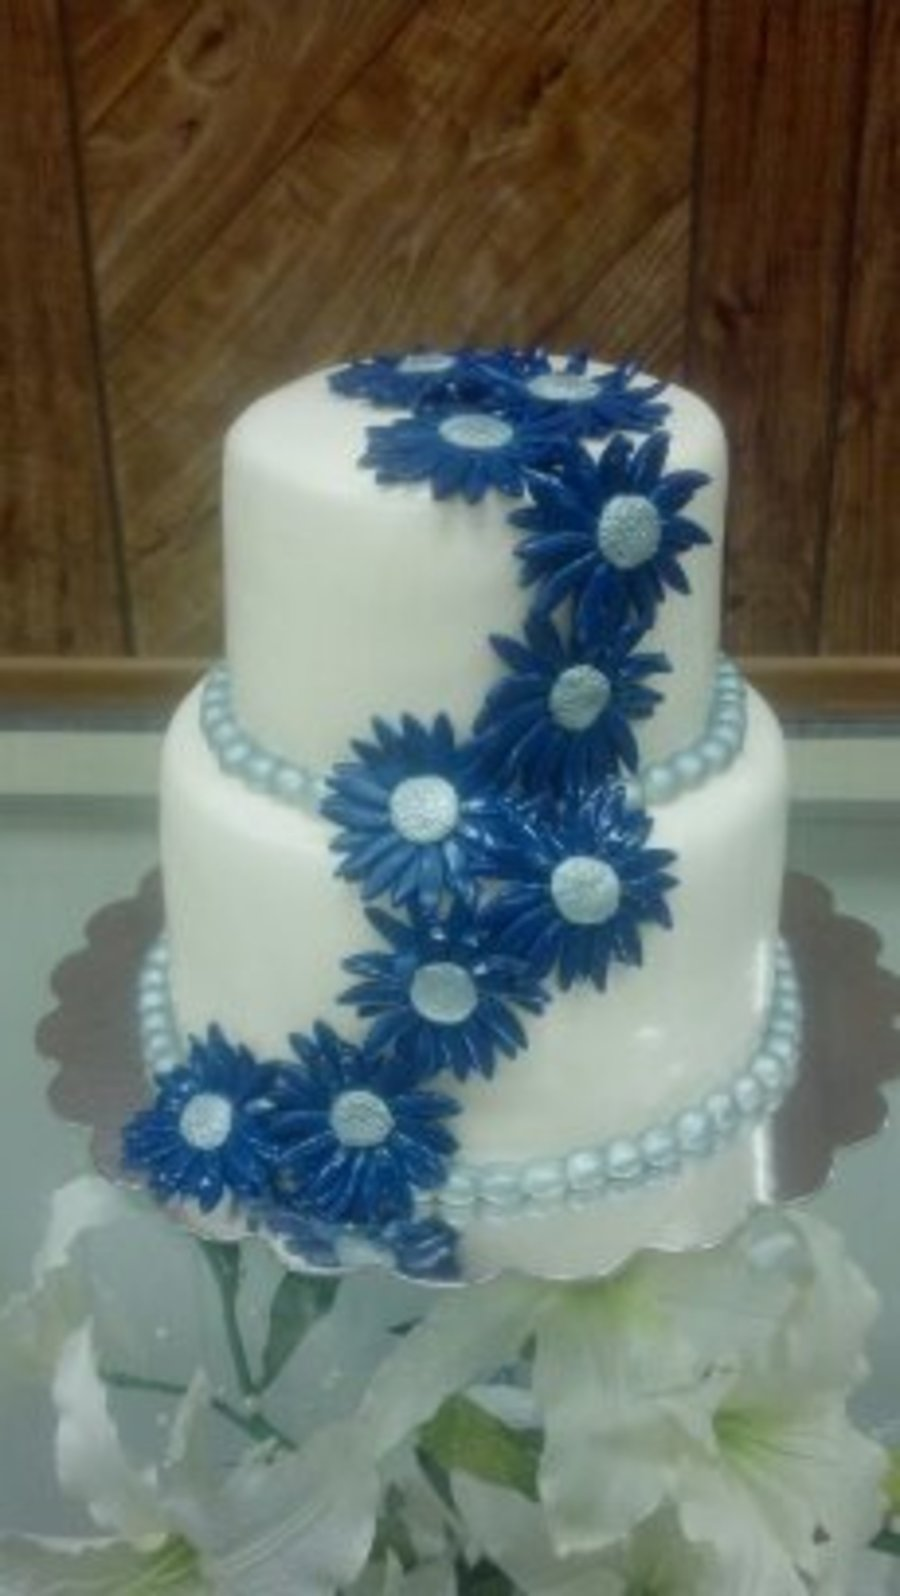 Blue Amp Silver Daisy Theme Wedding Cake By Pamcakes on Cake Central